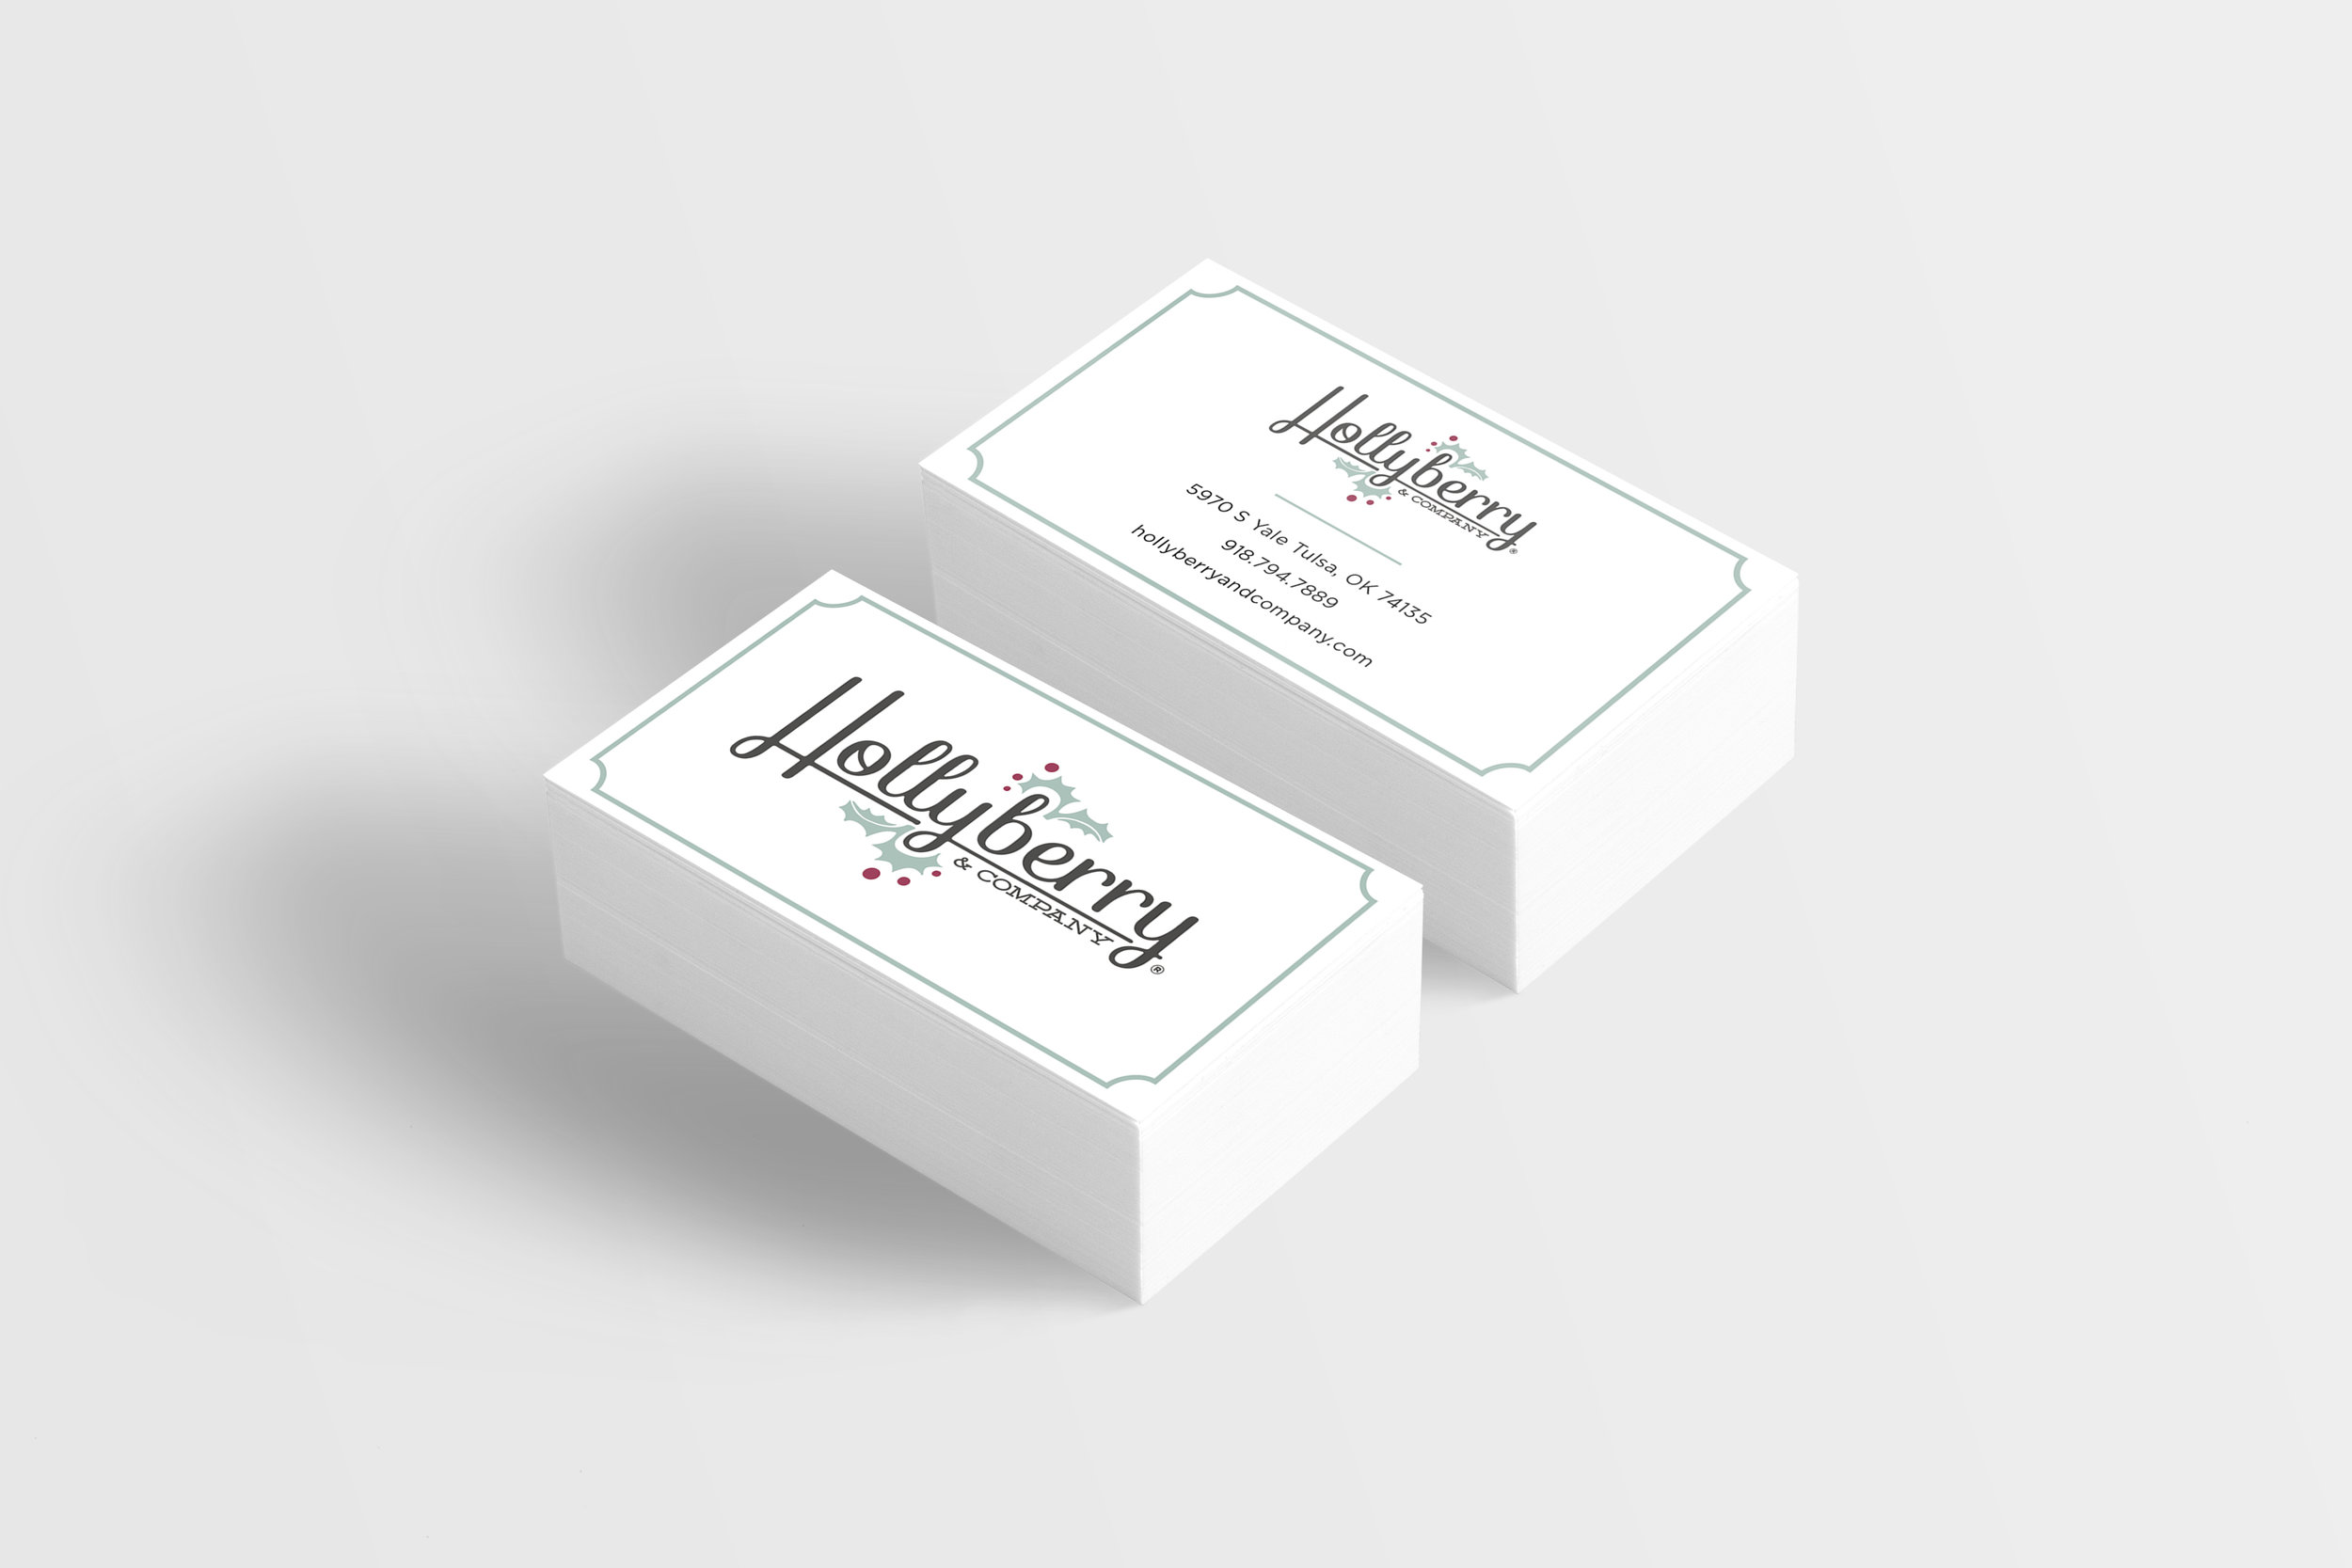 hayley bigham designs-tulsa graphic designer-hollyberry and company-logo design-home decor store-business cards